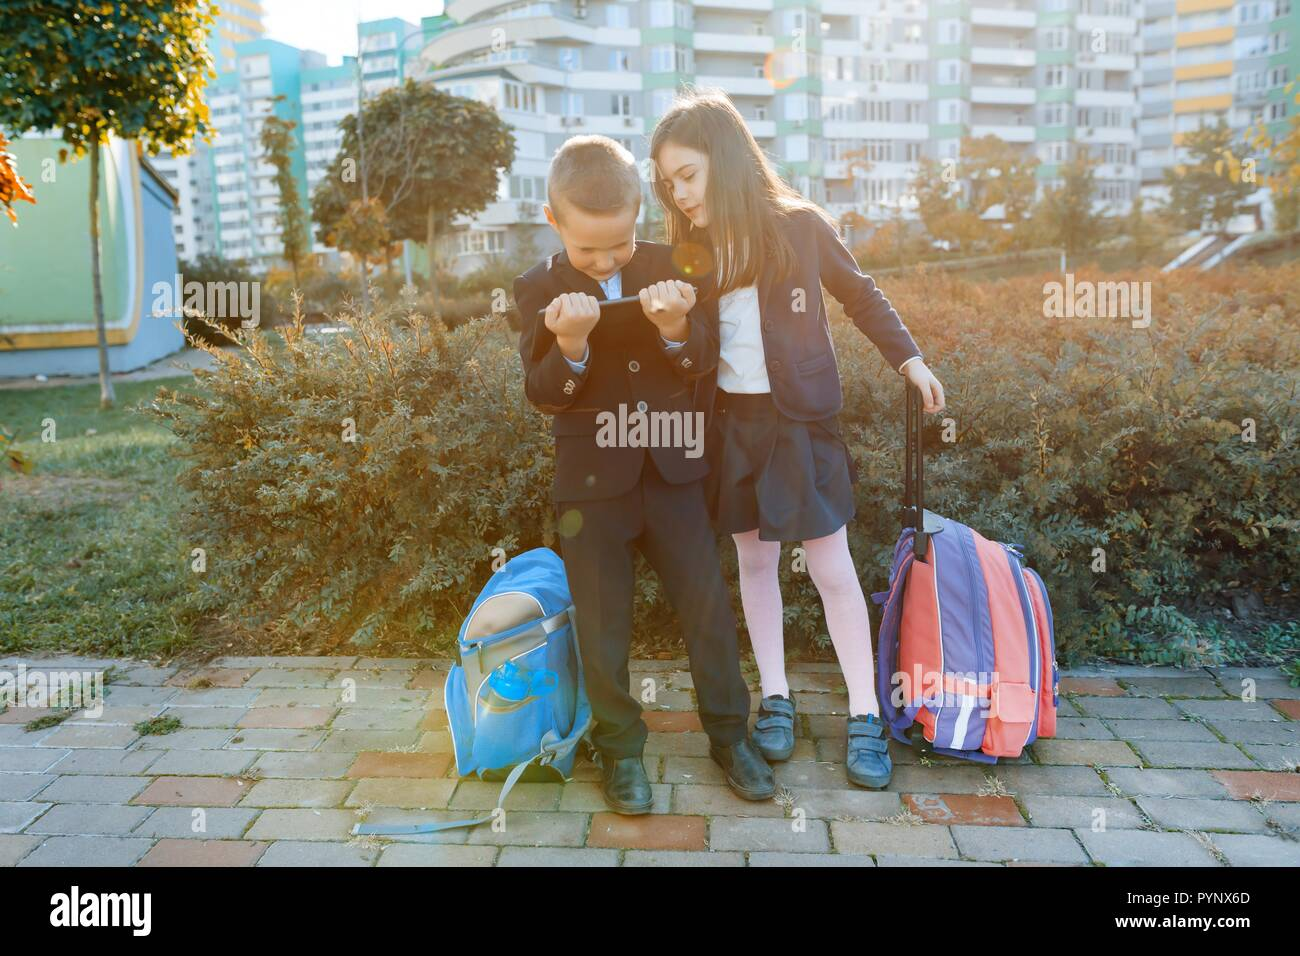 76496d2dc8ce Boy and girl pupils in primary school with a digital tablet. Outdoor  background, children